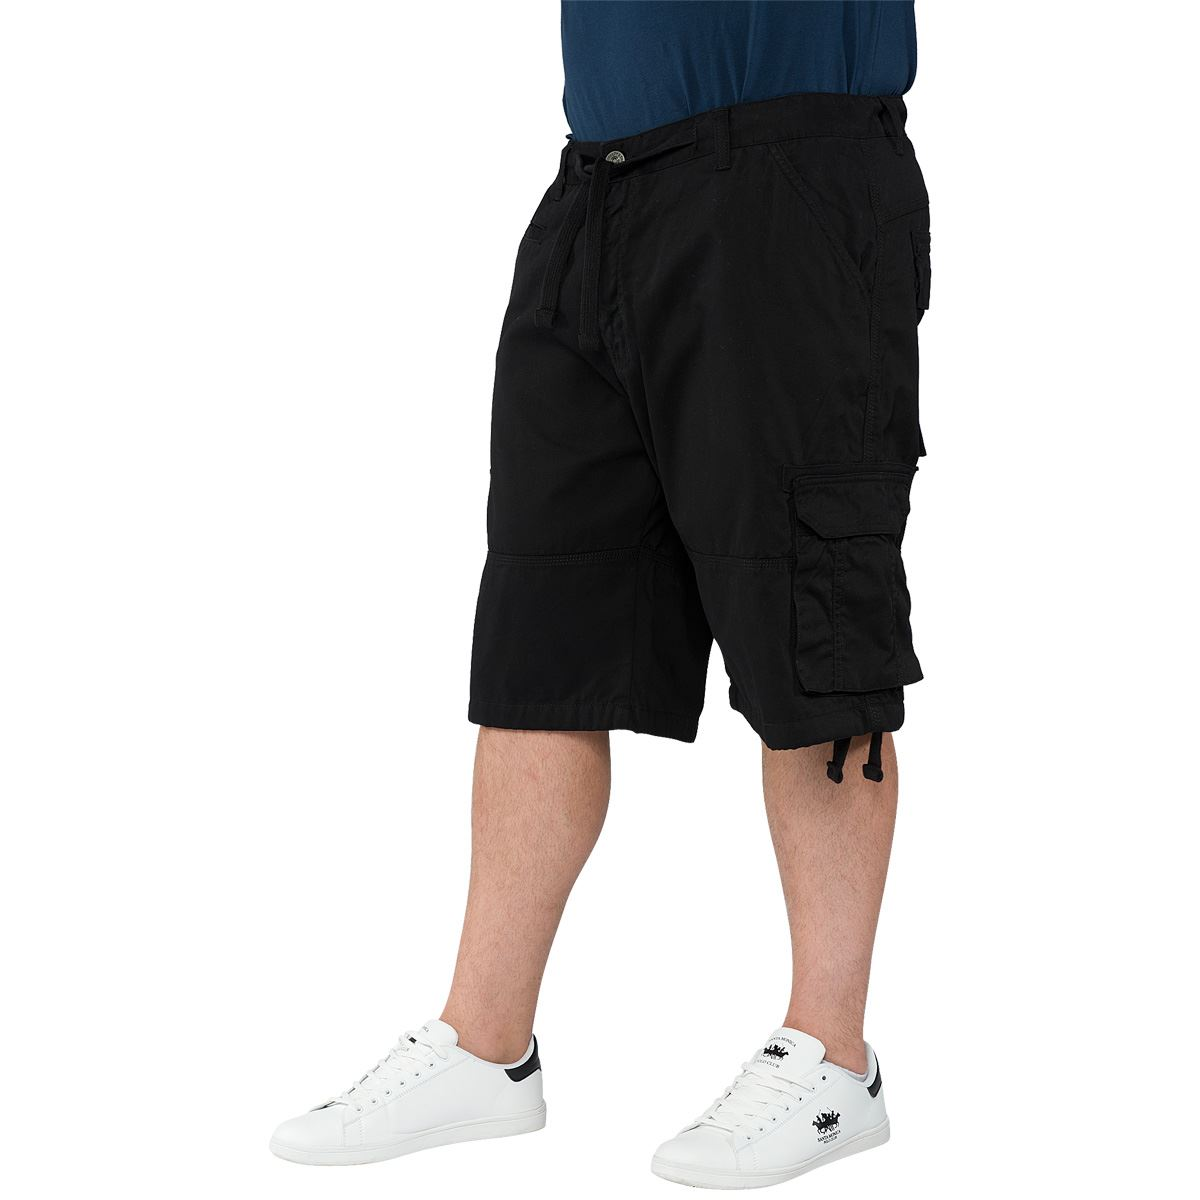 Shorts Kingsize carry big men's shorts all year round. Here you will find a vast selection of denim, chino, jersey, and quick dry activewear shorts from leading brands.